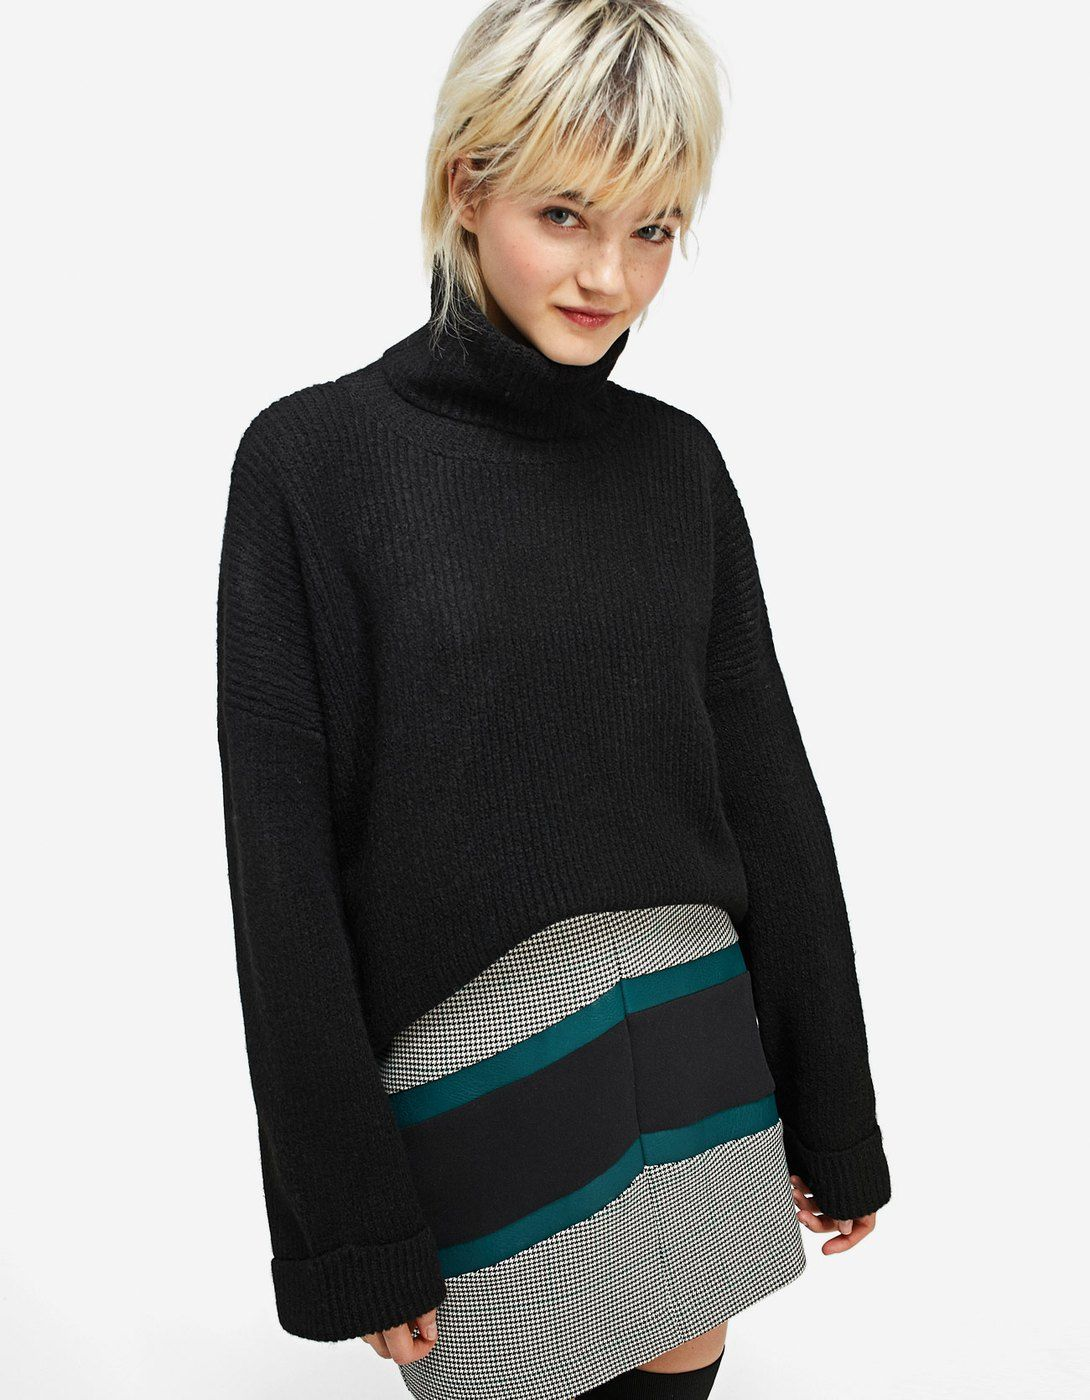 Polo Neck Sweater With Rolled Up Sleeves Just In Stradivarius